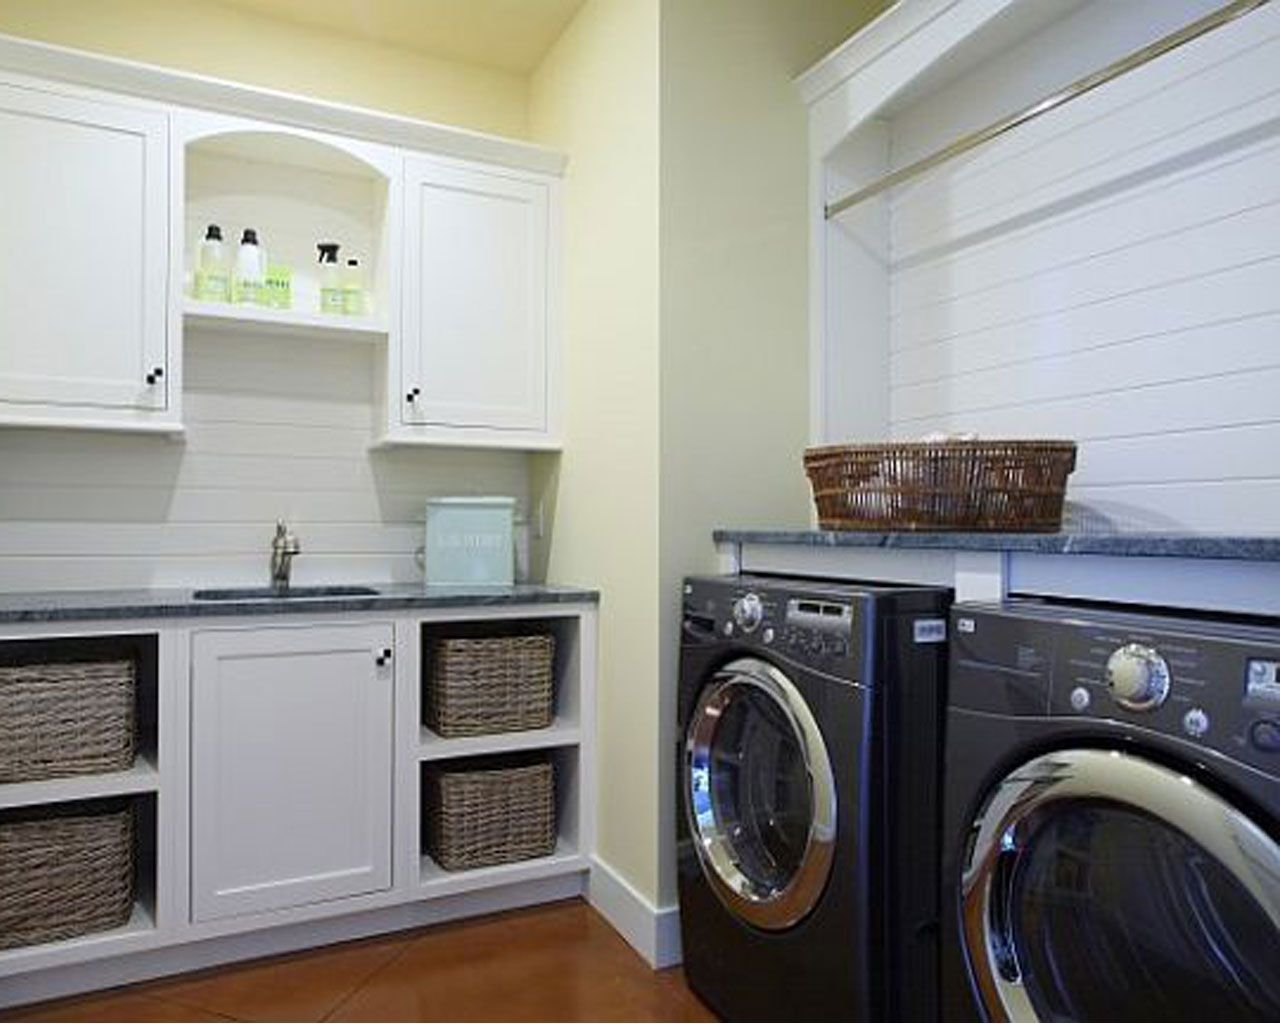 Cool Laundry Rooms Tiny Laundry Room Decorating Ideas Small Utility Room Design Ideas